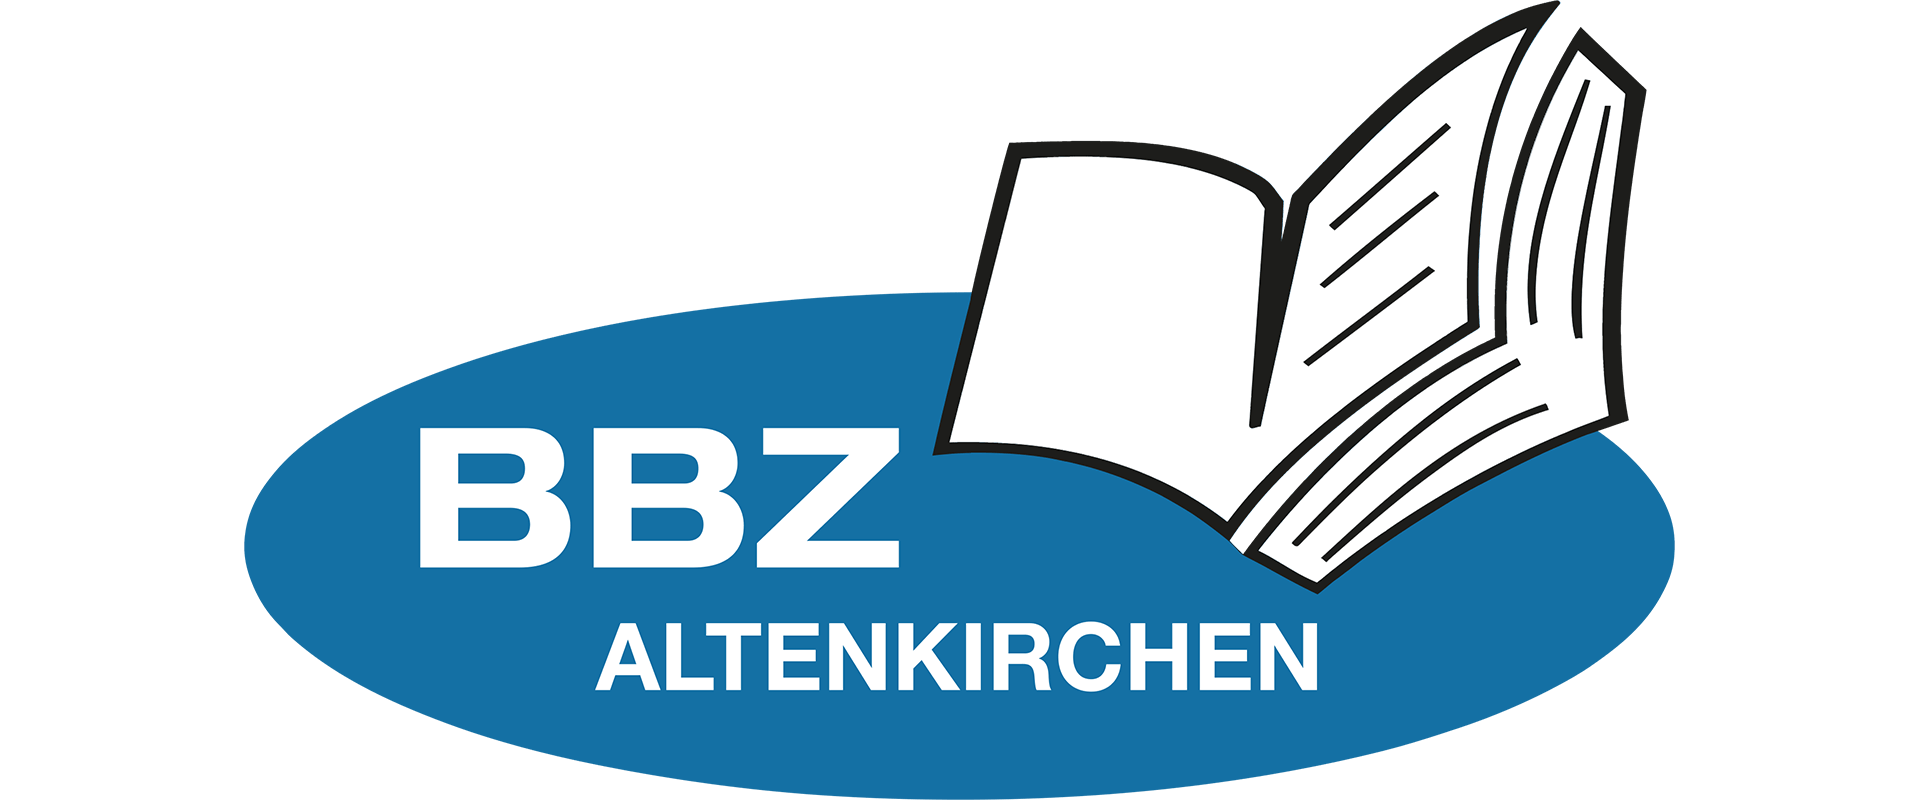 BBZ Altenkirchen GmbH & Co. KG Logo der MEDIAN Klinik